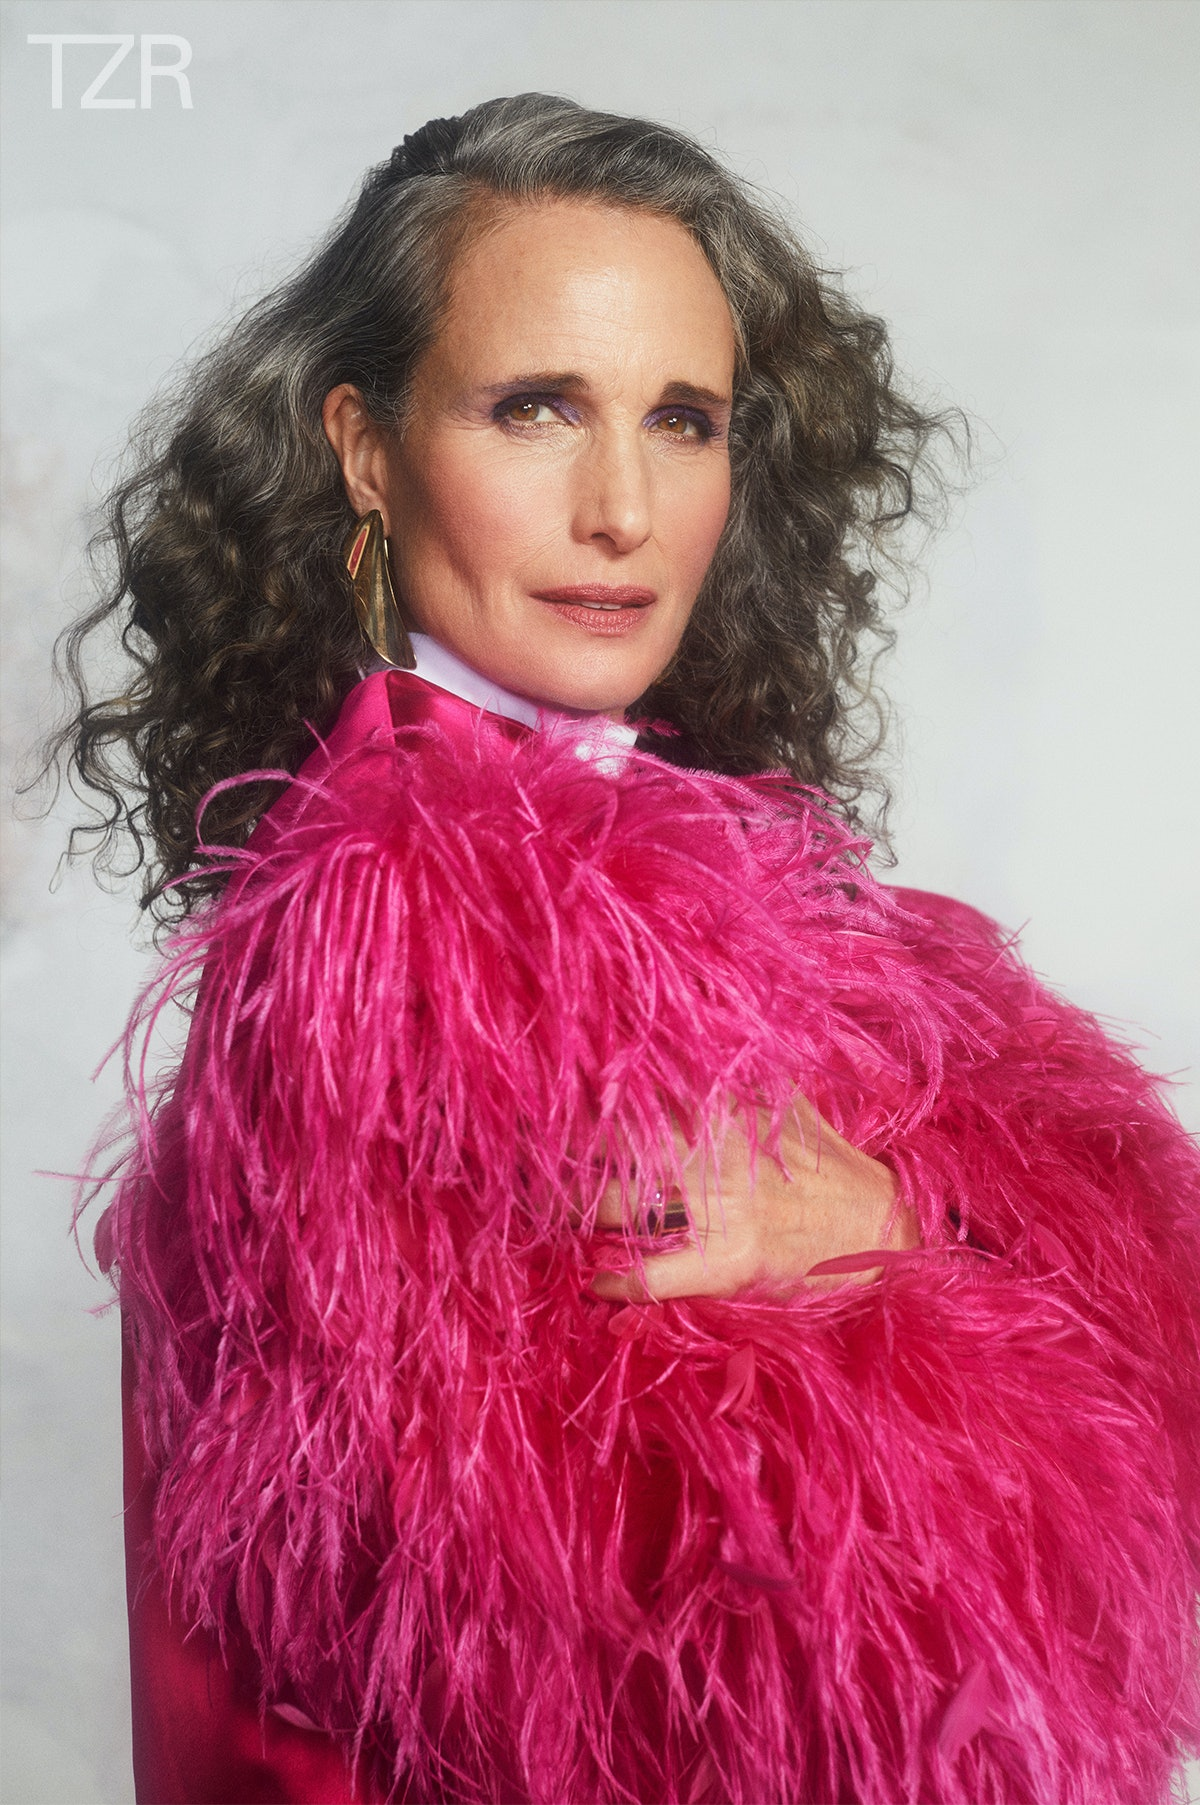 TZR cover star Andie MacDowell wears her gray hair in a voluminous side part.